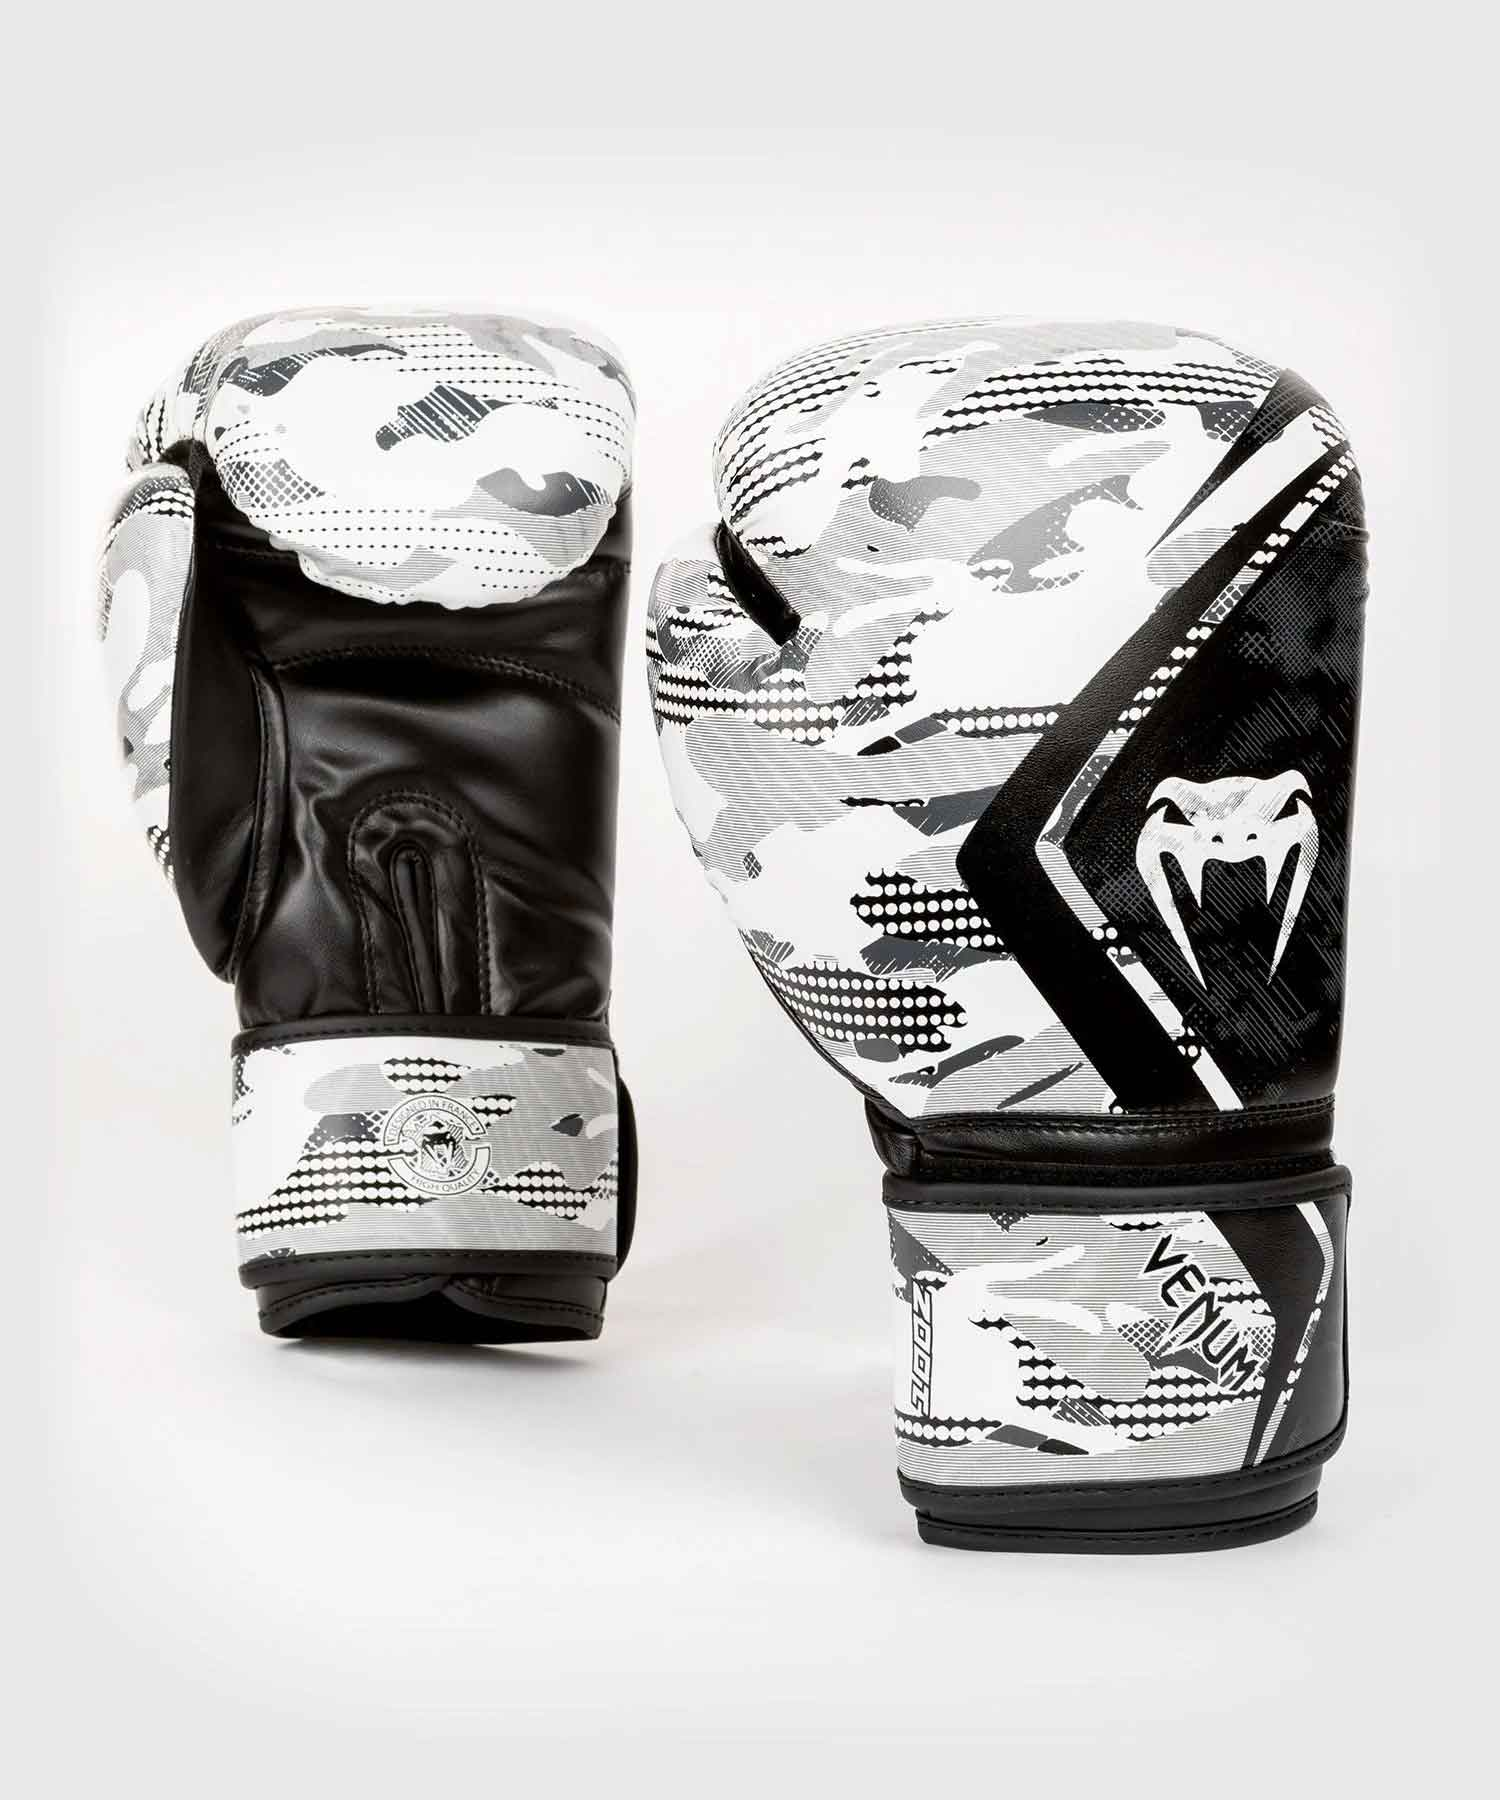 DEFENDER CONTENDER 2.0 BOXING GLOVES/ディフェンダー コンテンダー 2.0 ボクシンググローブ(アーバンカモ)